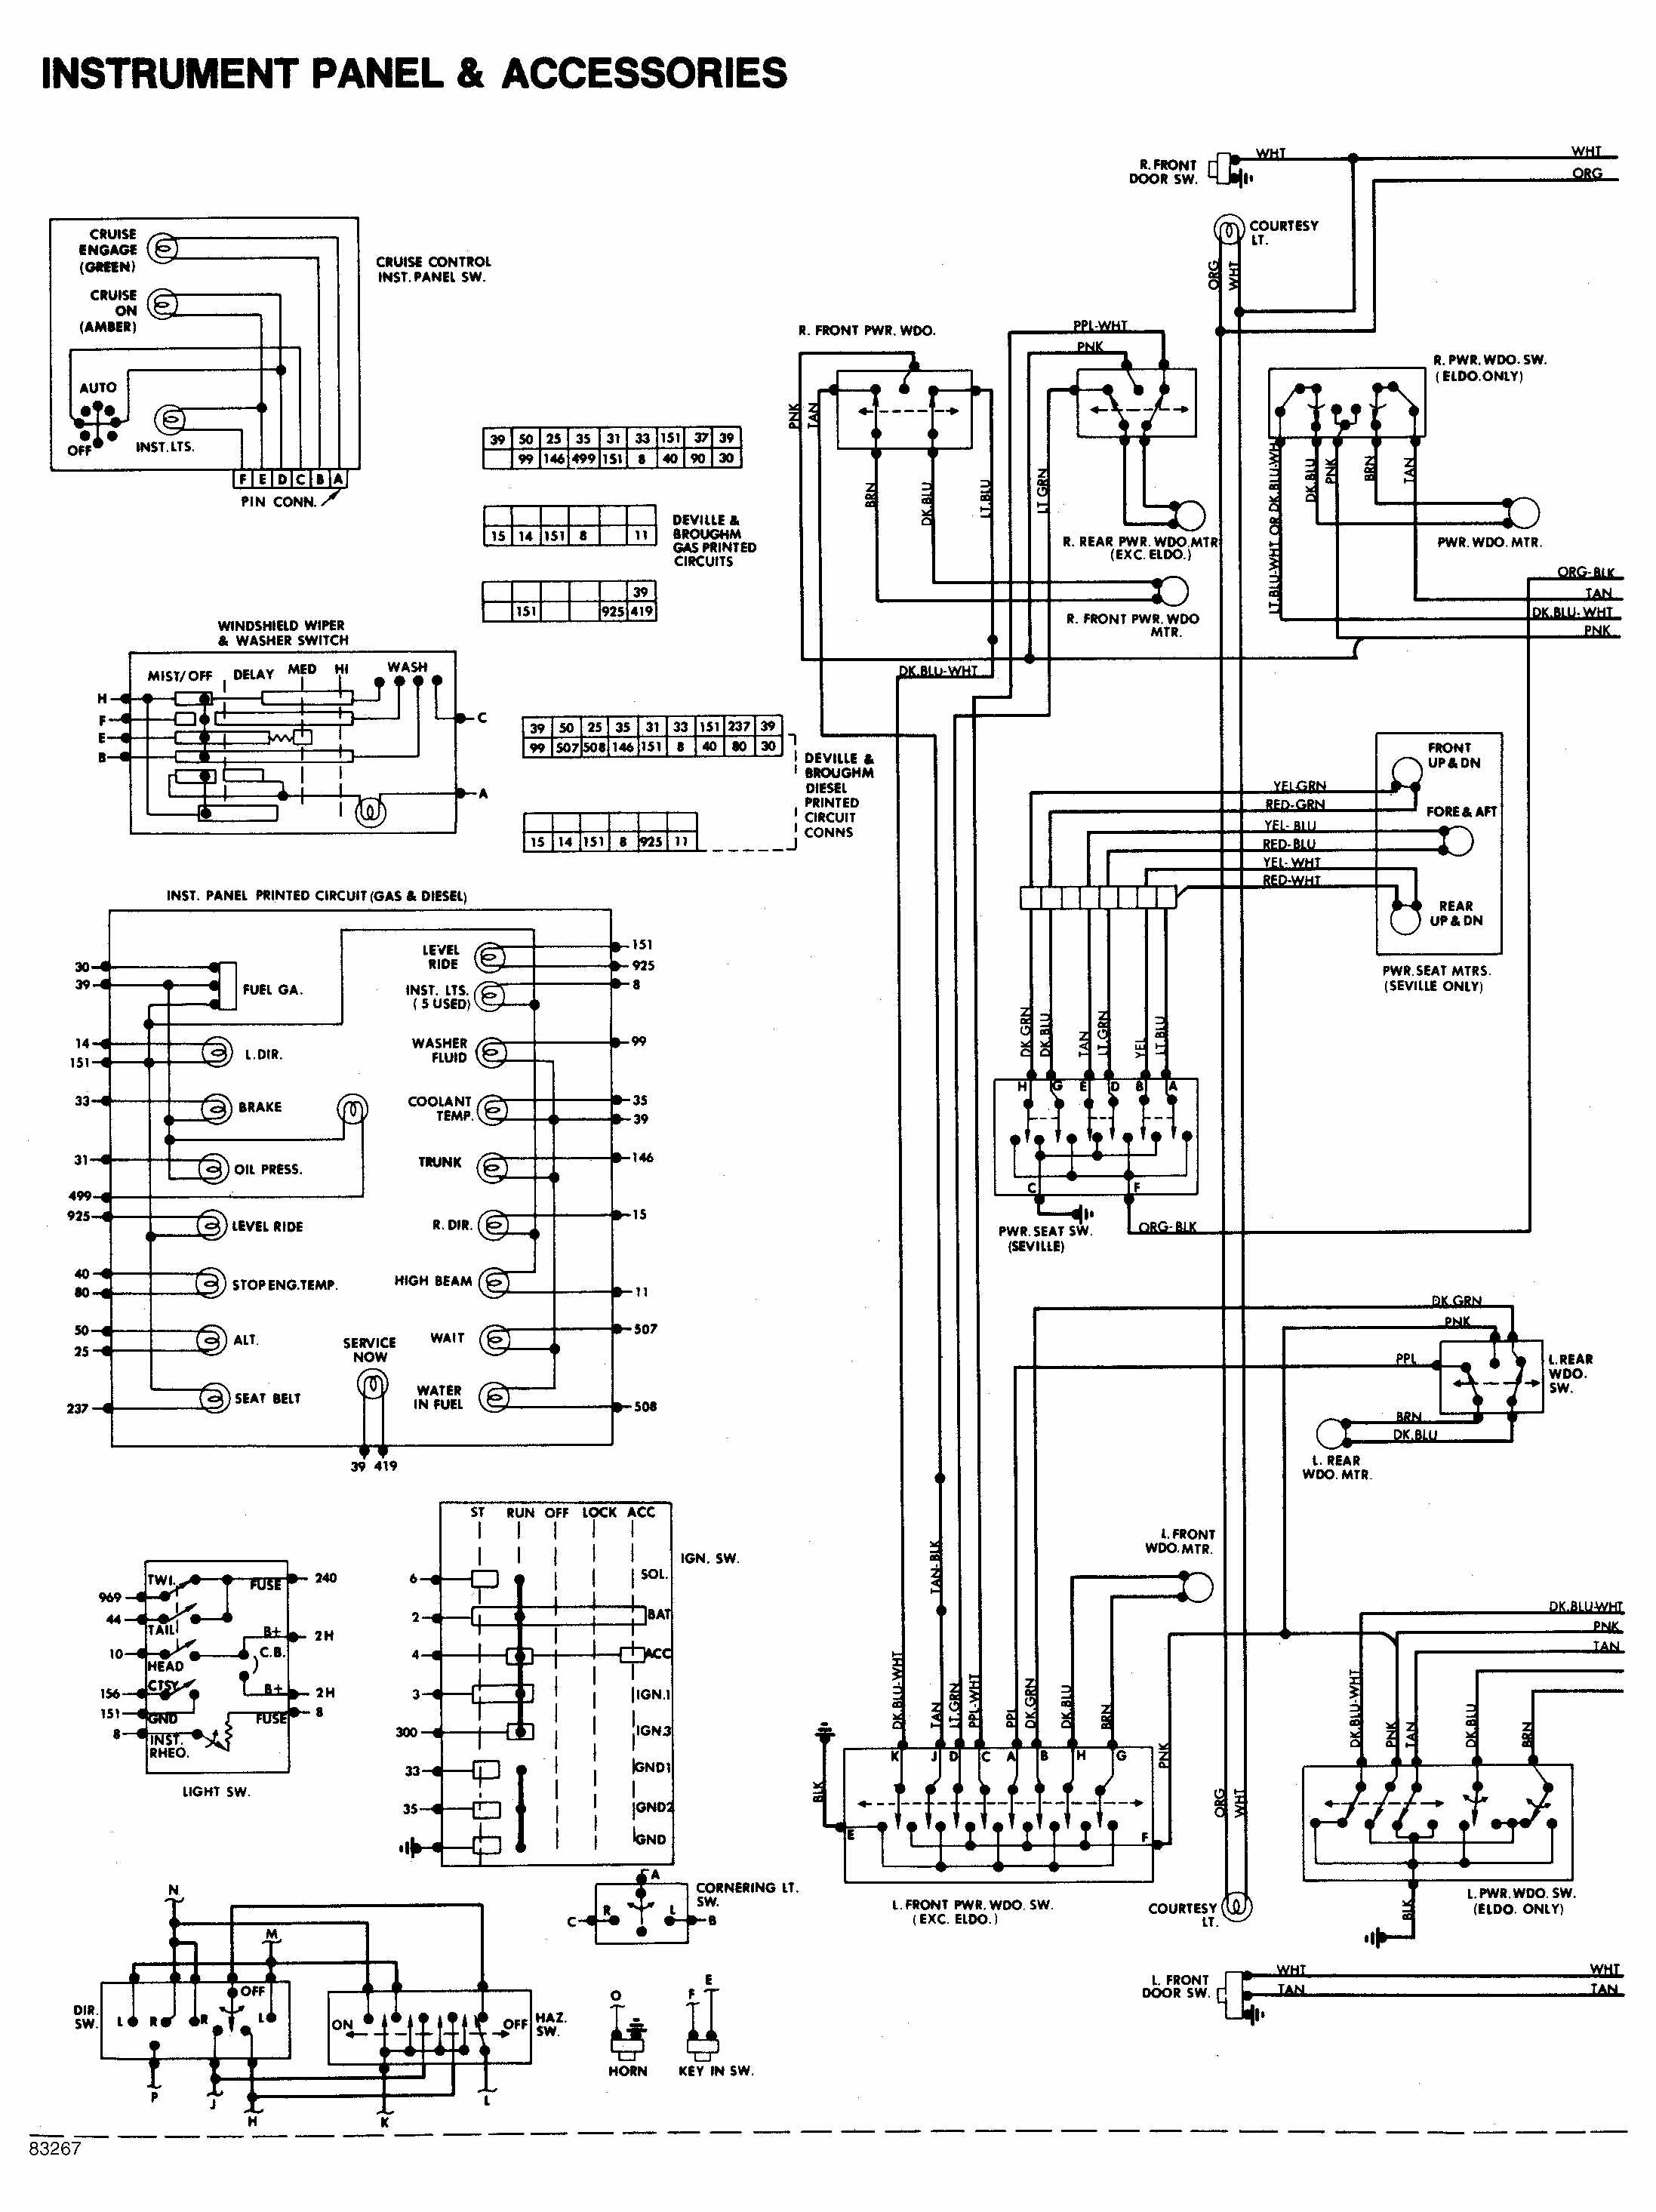 1970 pontiac firebird trans am wiring diagram schematic